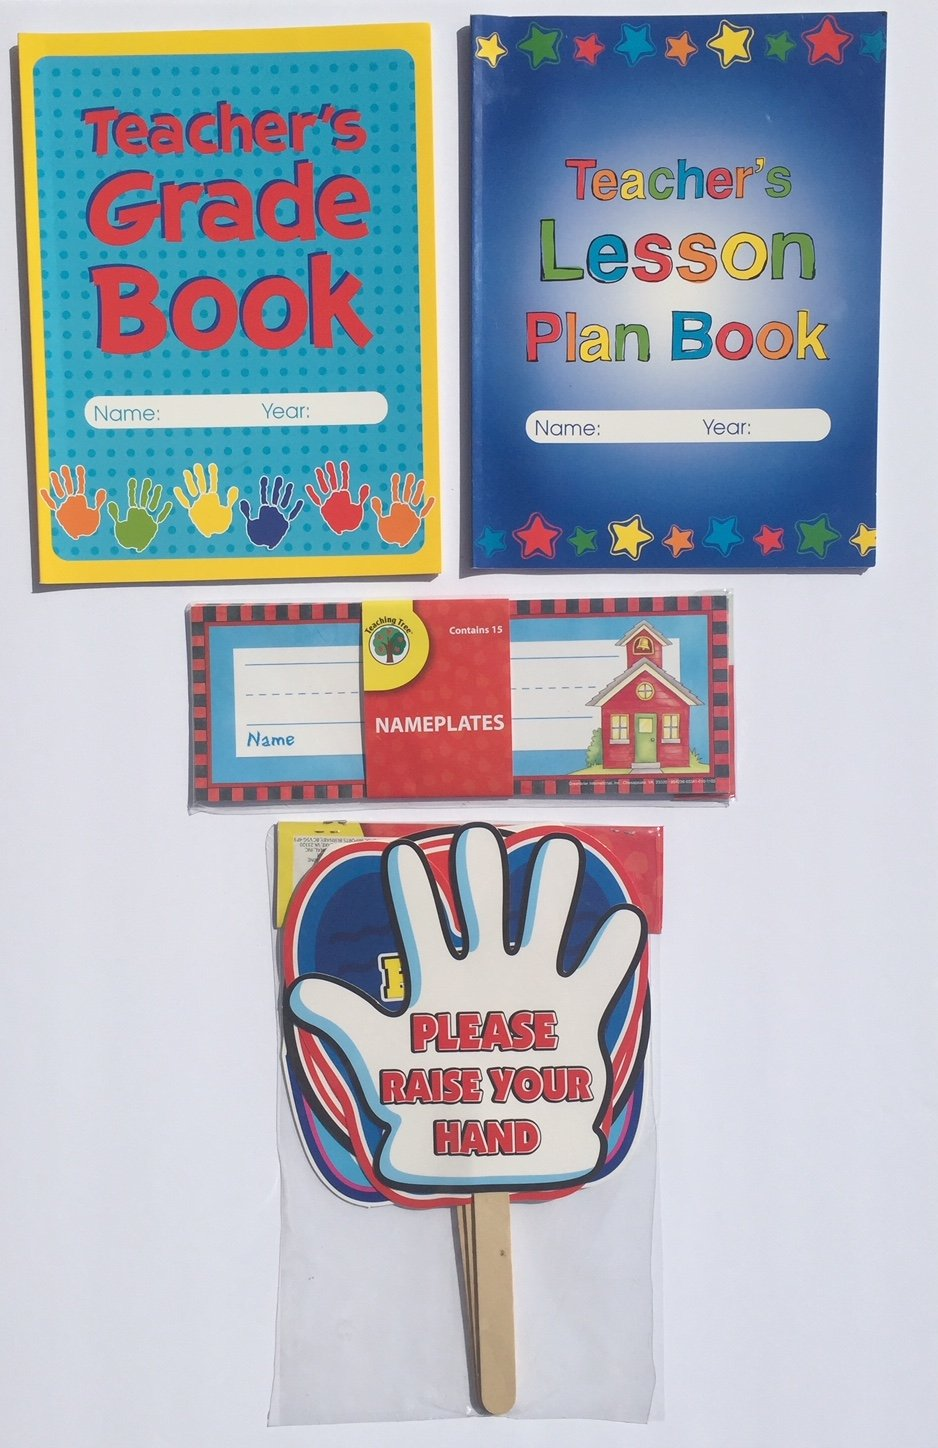 Teacher Grade Lesson Plan Book Teaching School Planner Classroom Signs Student Desk Name Tags Nameplates Supplies Gifts